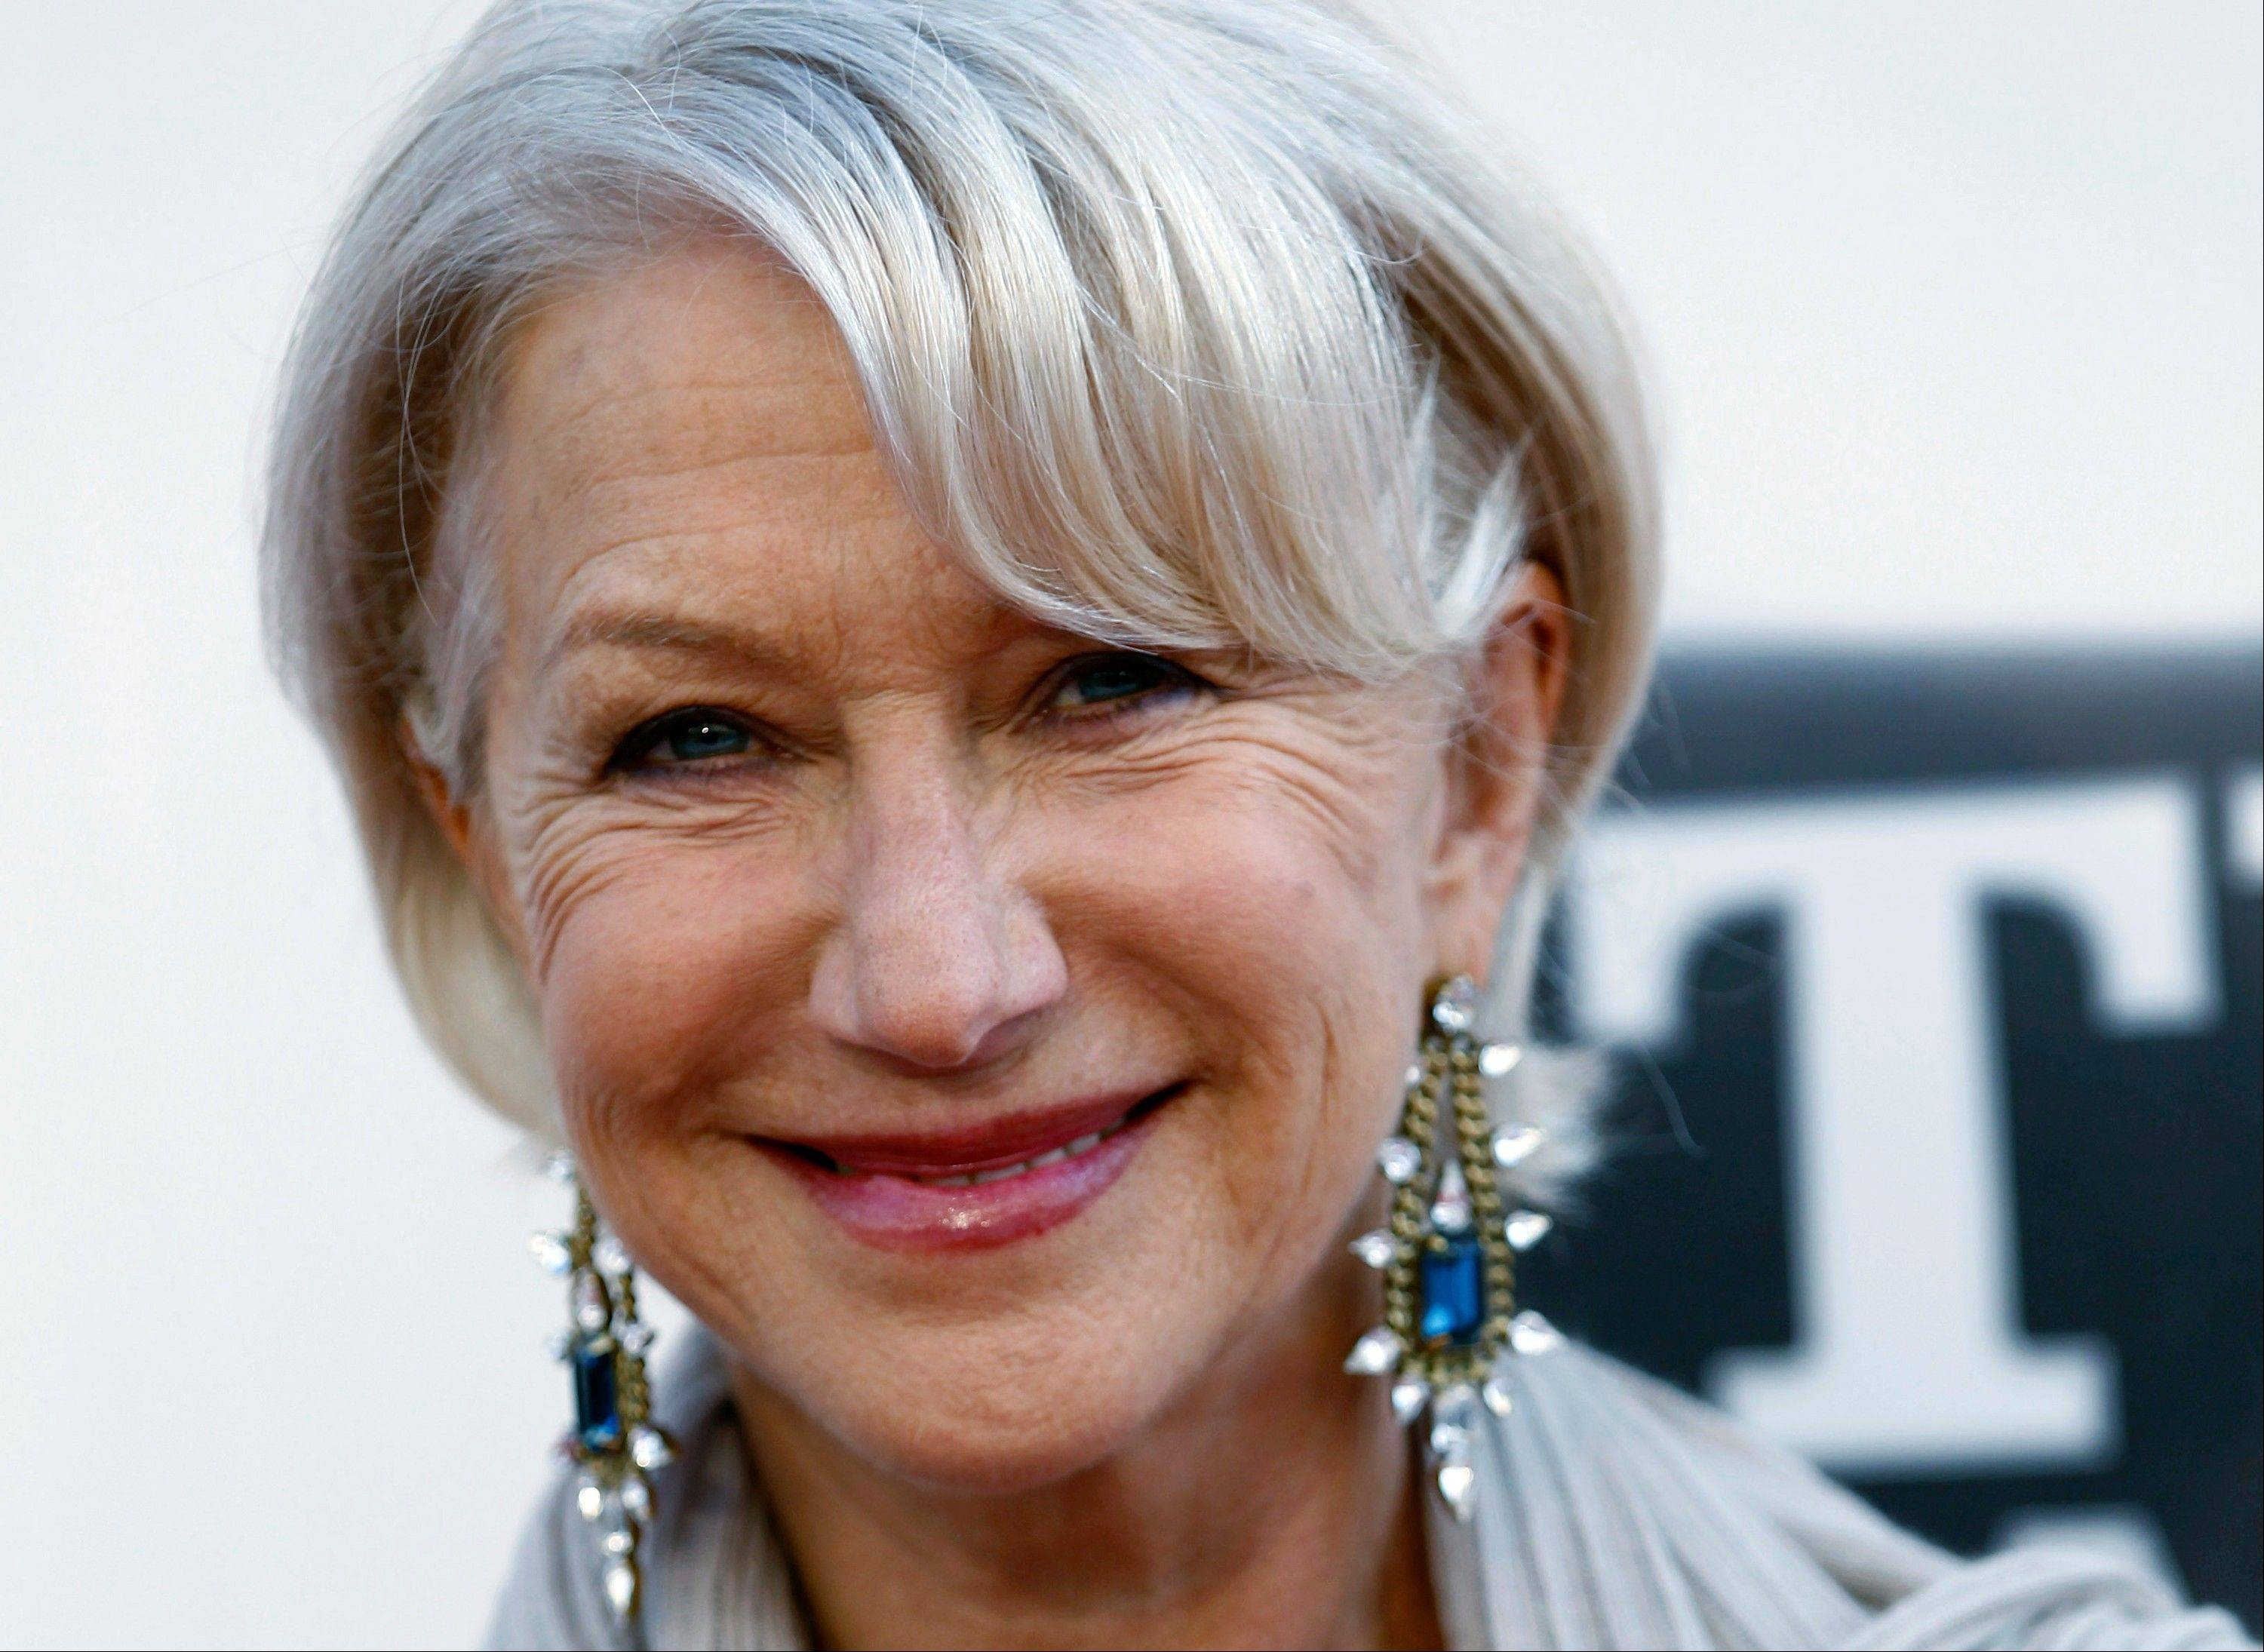 A troupe of street performers got a shock on Saturday when Helen Mirren, dressed as Queen Elizabeth II, emerged from a London theater during the intermission of her performance, to berate them for disrupting her show.